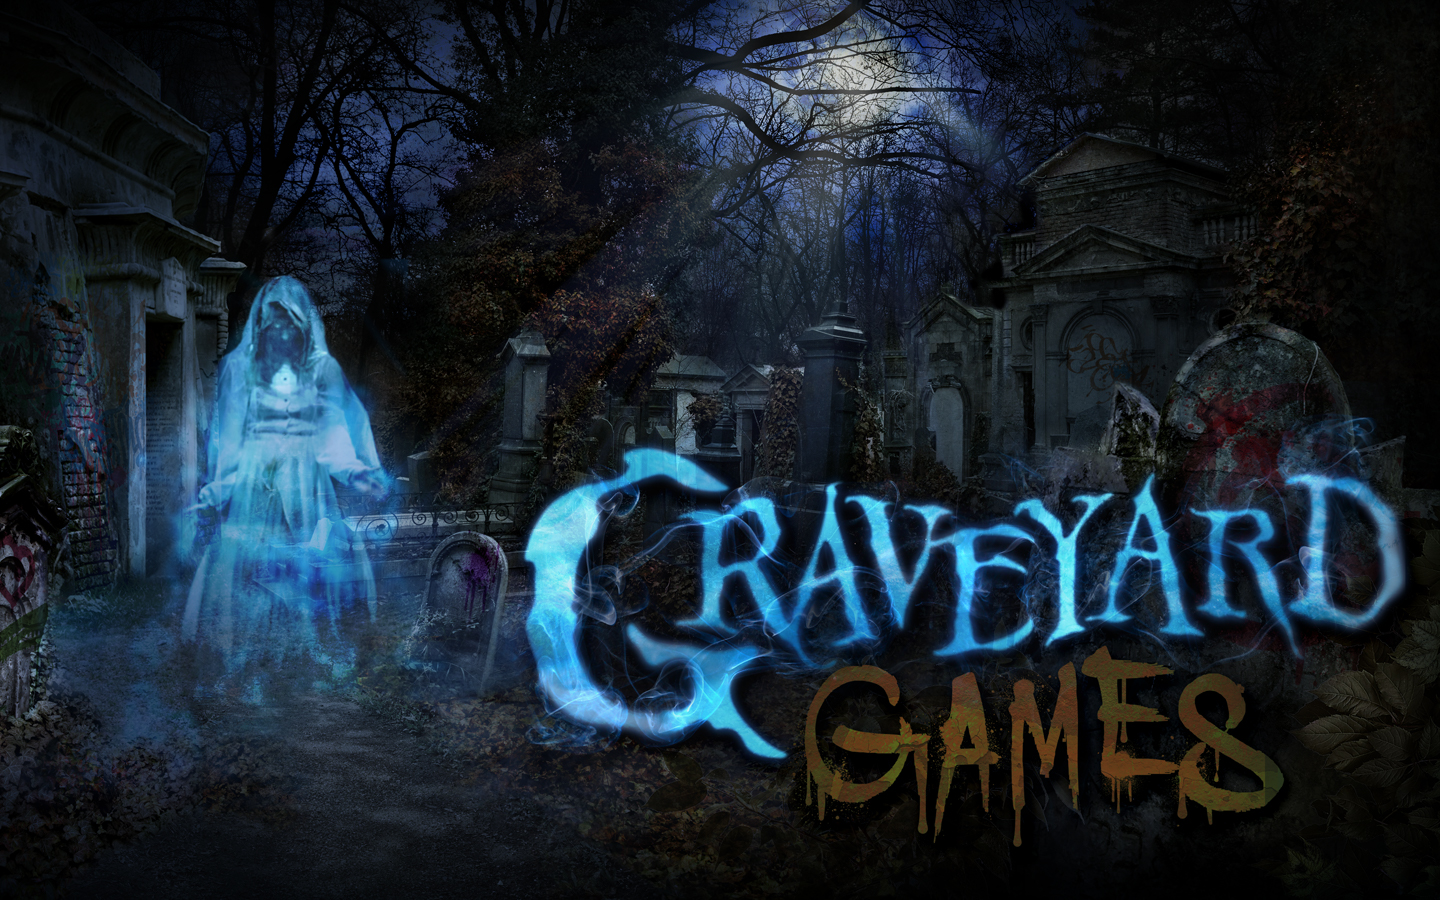 Universal Studios Singapore Halloween Horror Nights 2019.Graveyard Games Haunted House Announced For Halloween Horror Nights